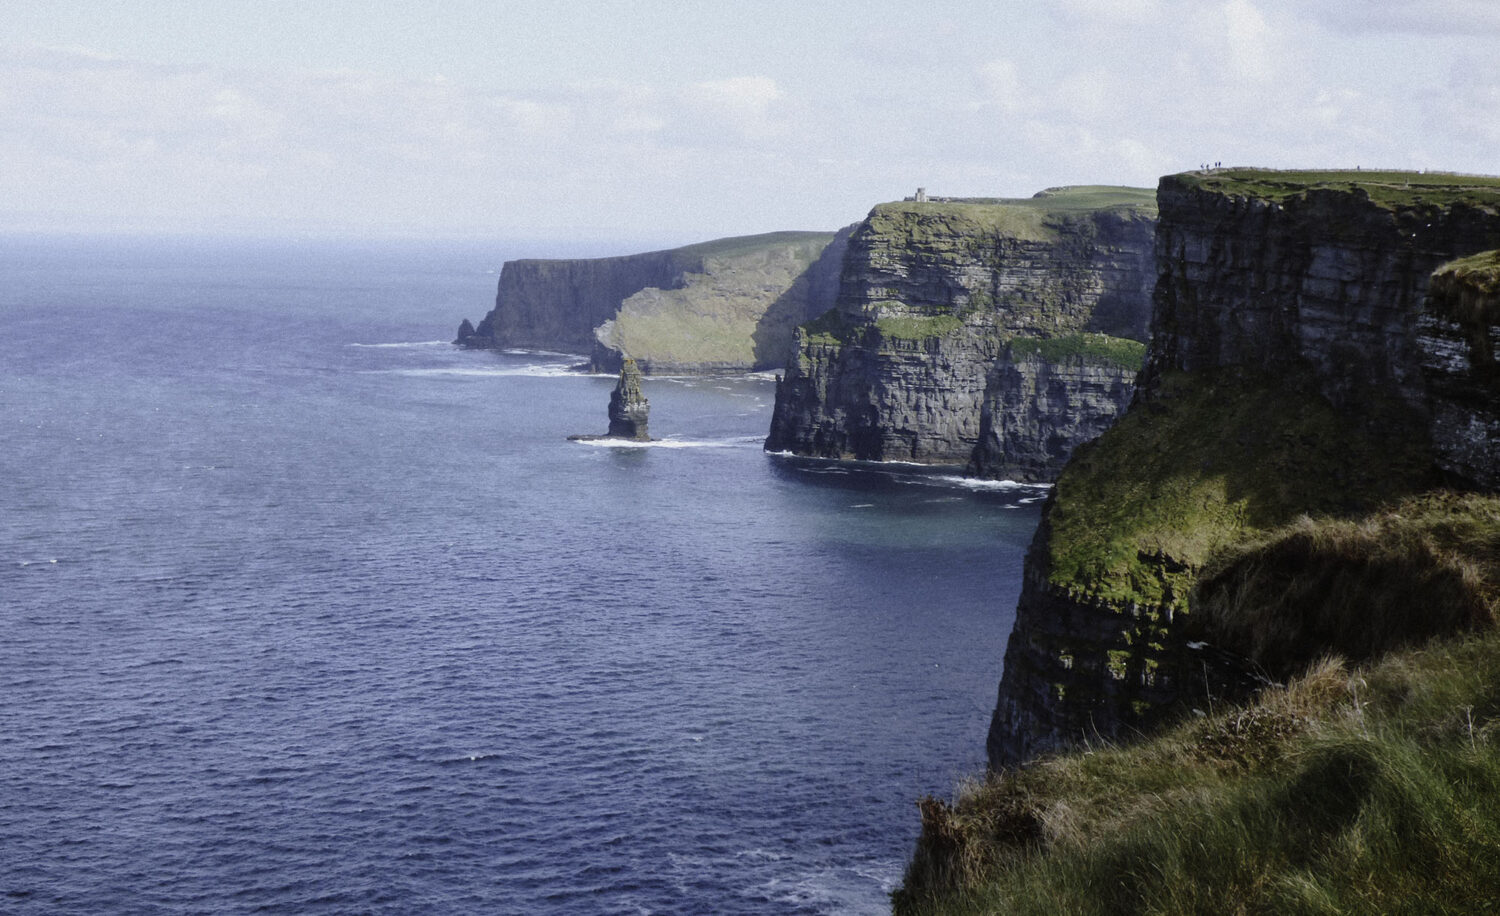 What to see in Ireland in 7 days: the Cliffs of Moher cannot be missed!